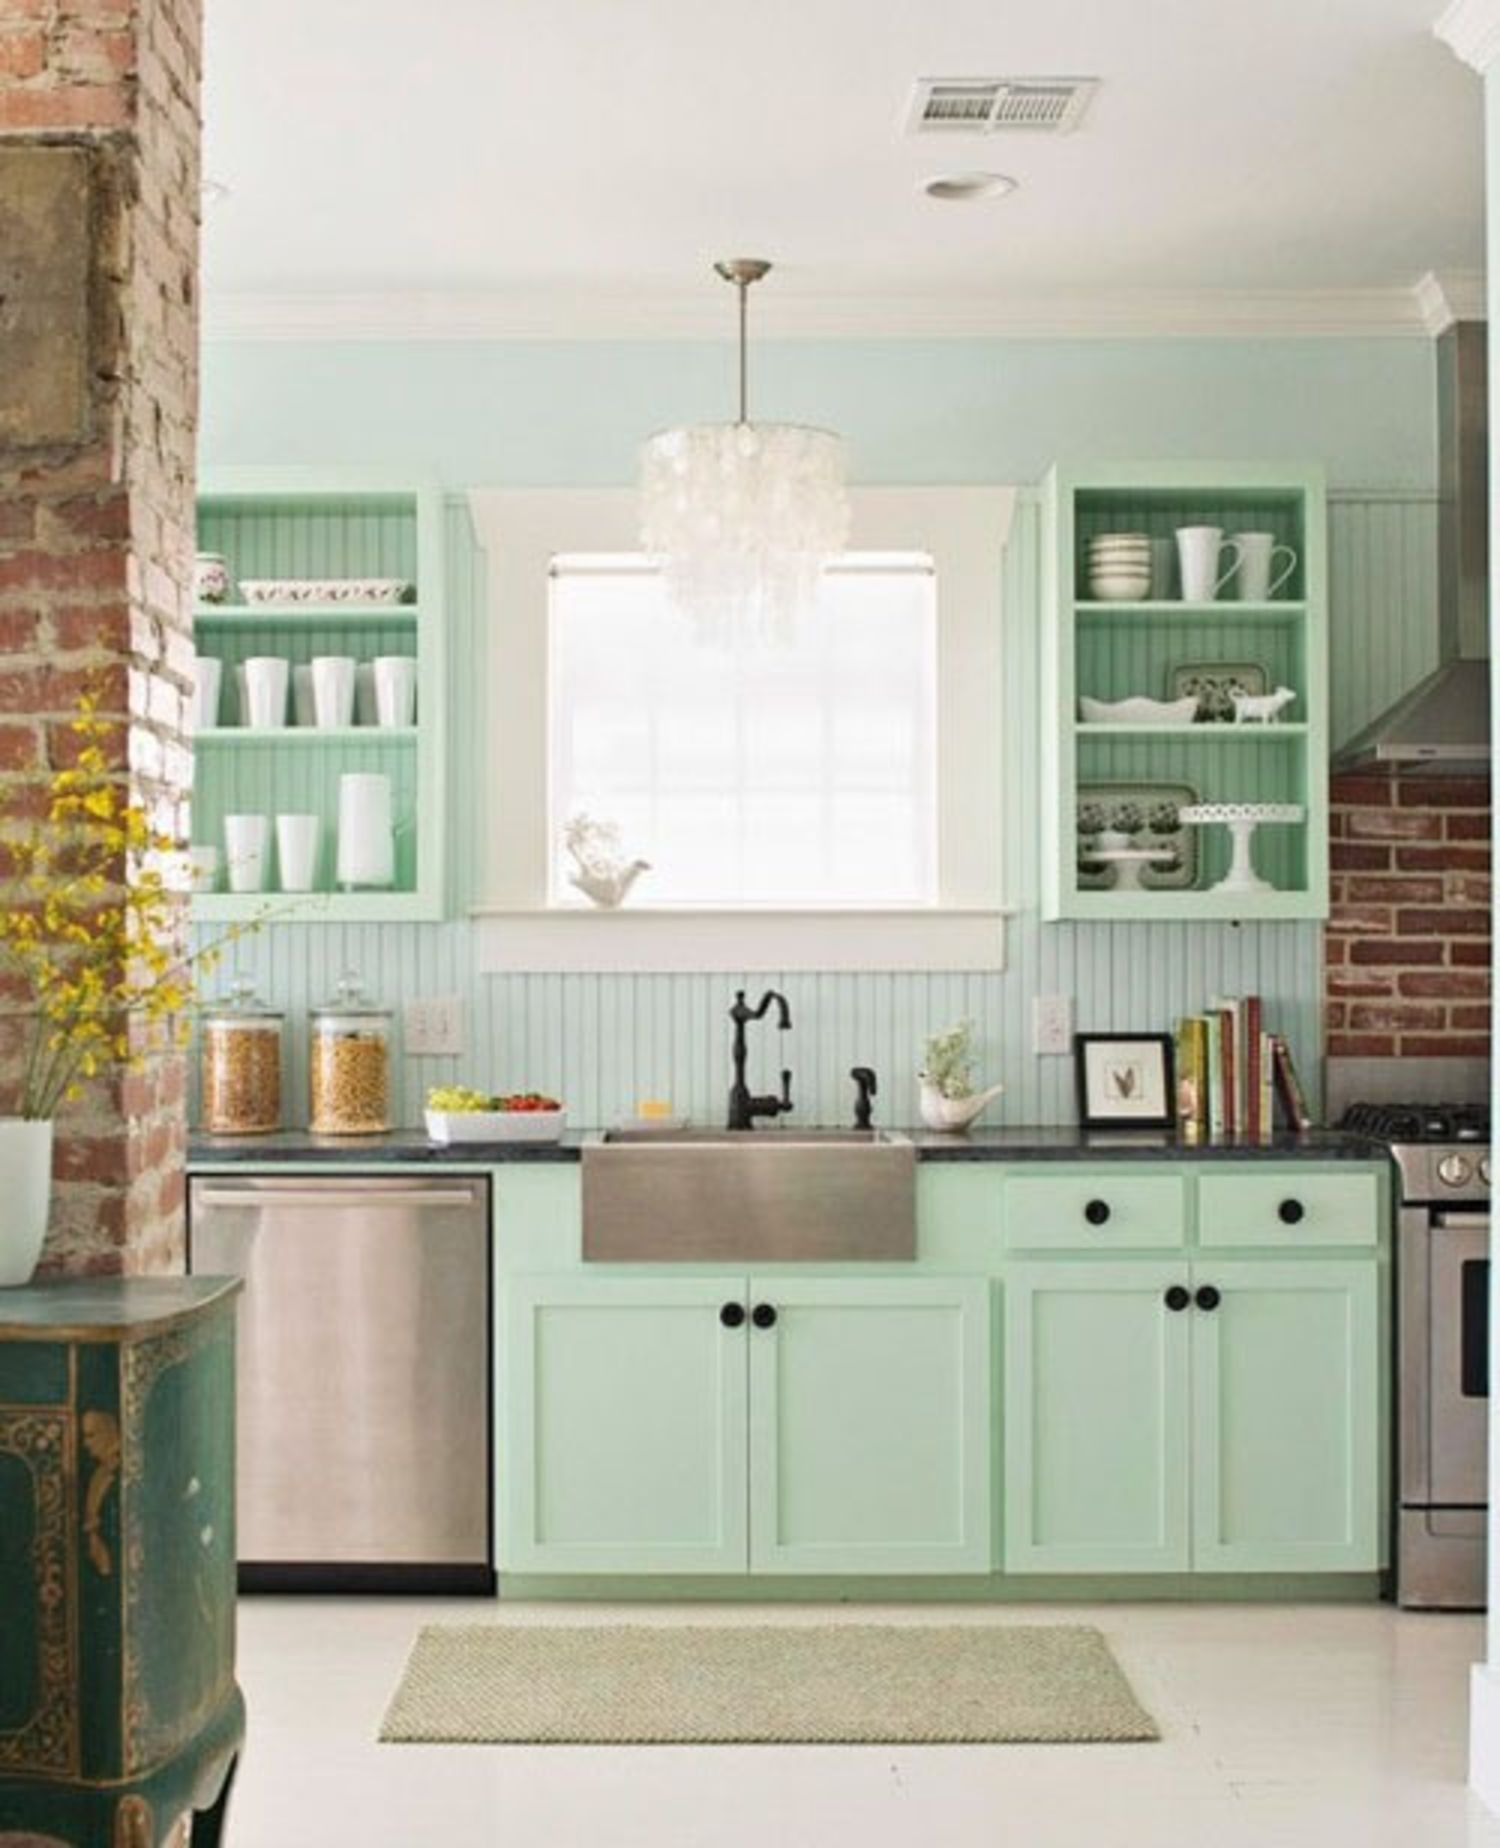 Color Spotlight Seafoam Green Green Kitchen Cabinets Kitchen Remodel Kitchen Cabinets